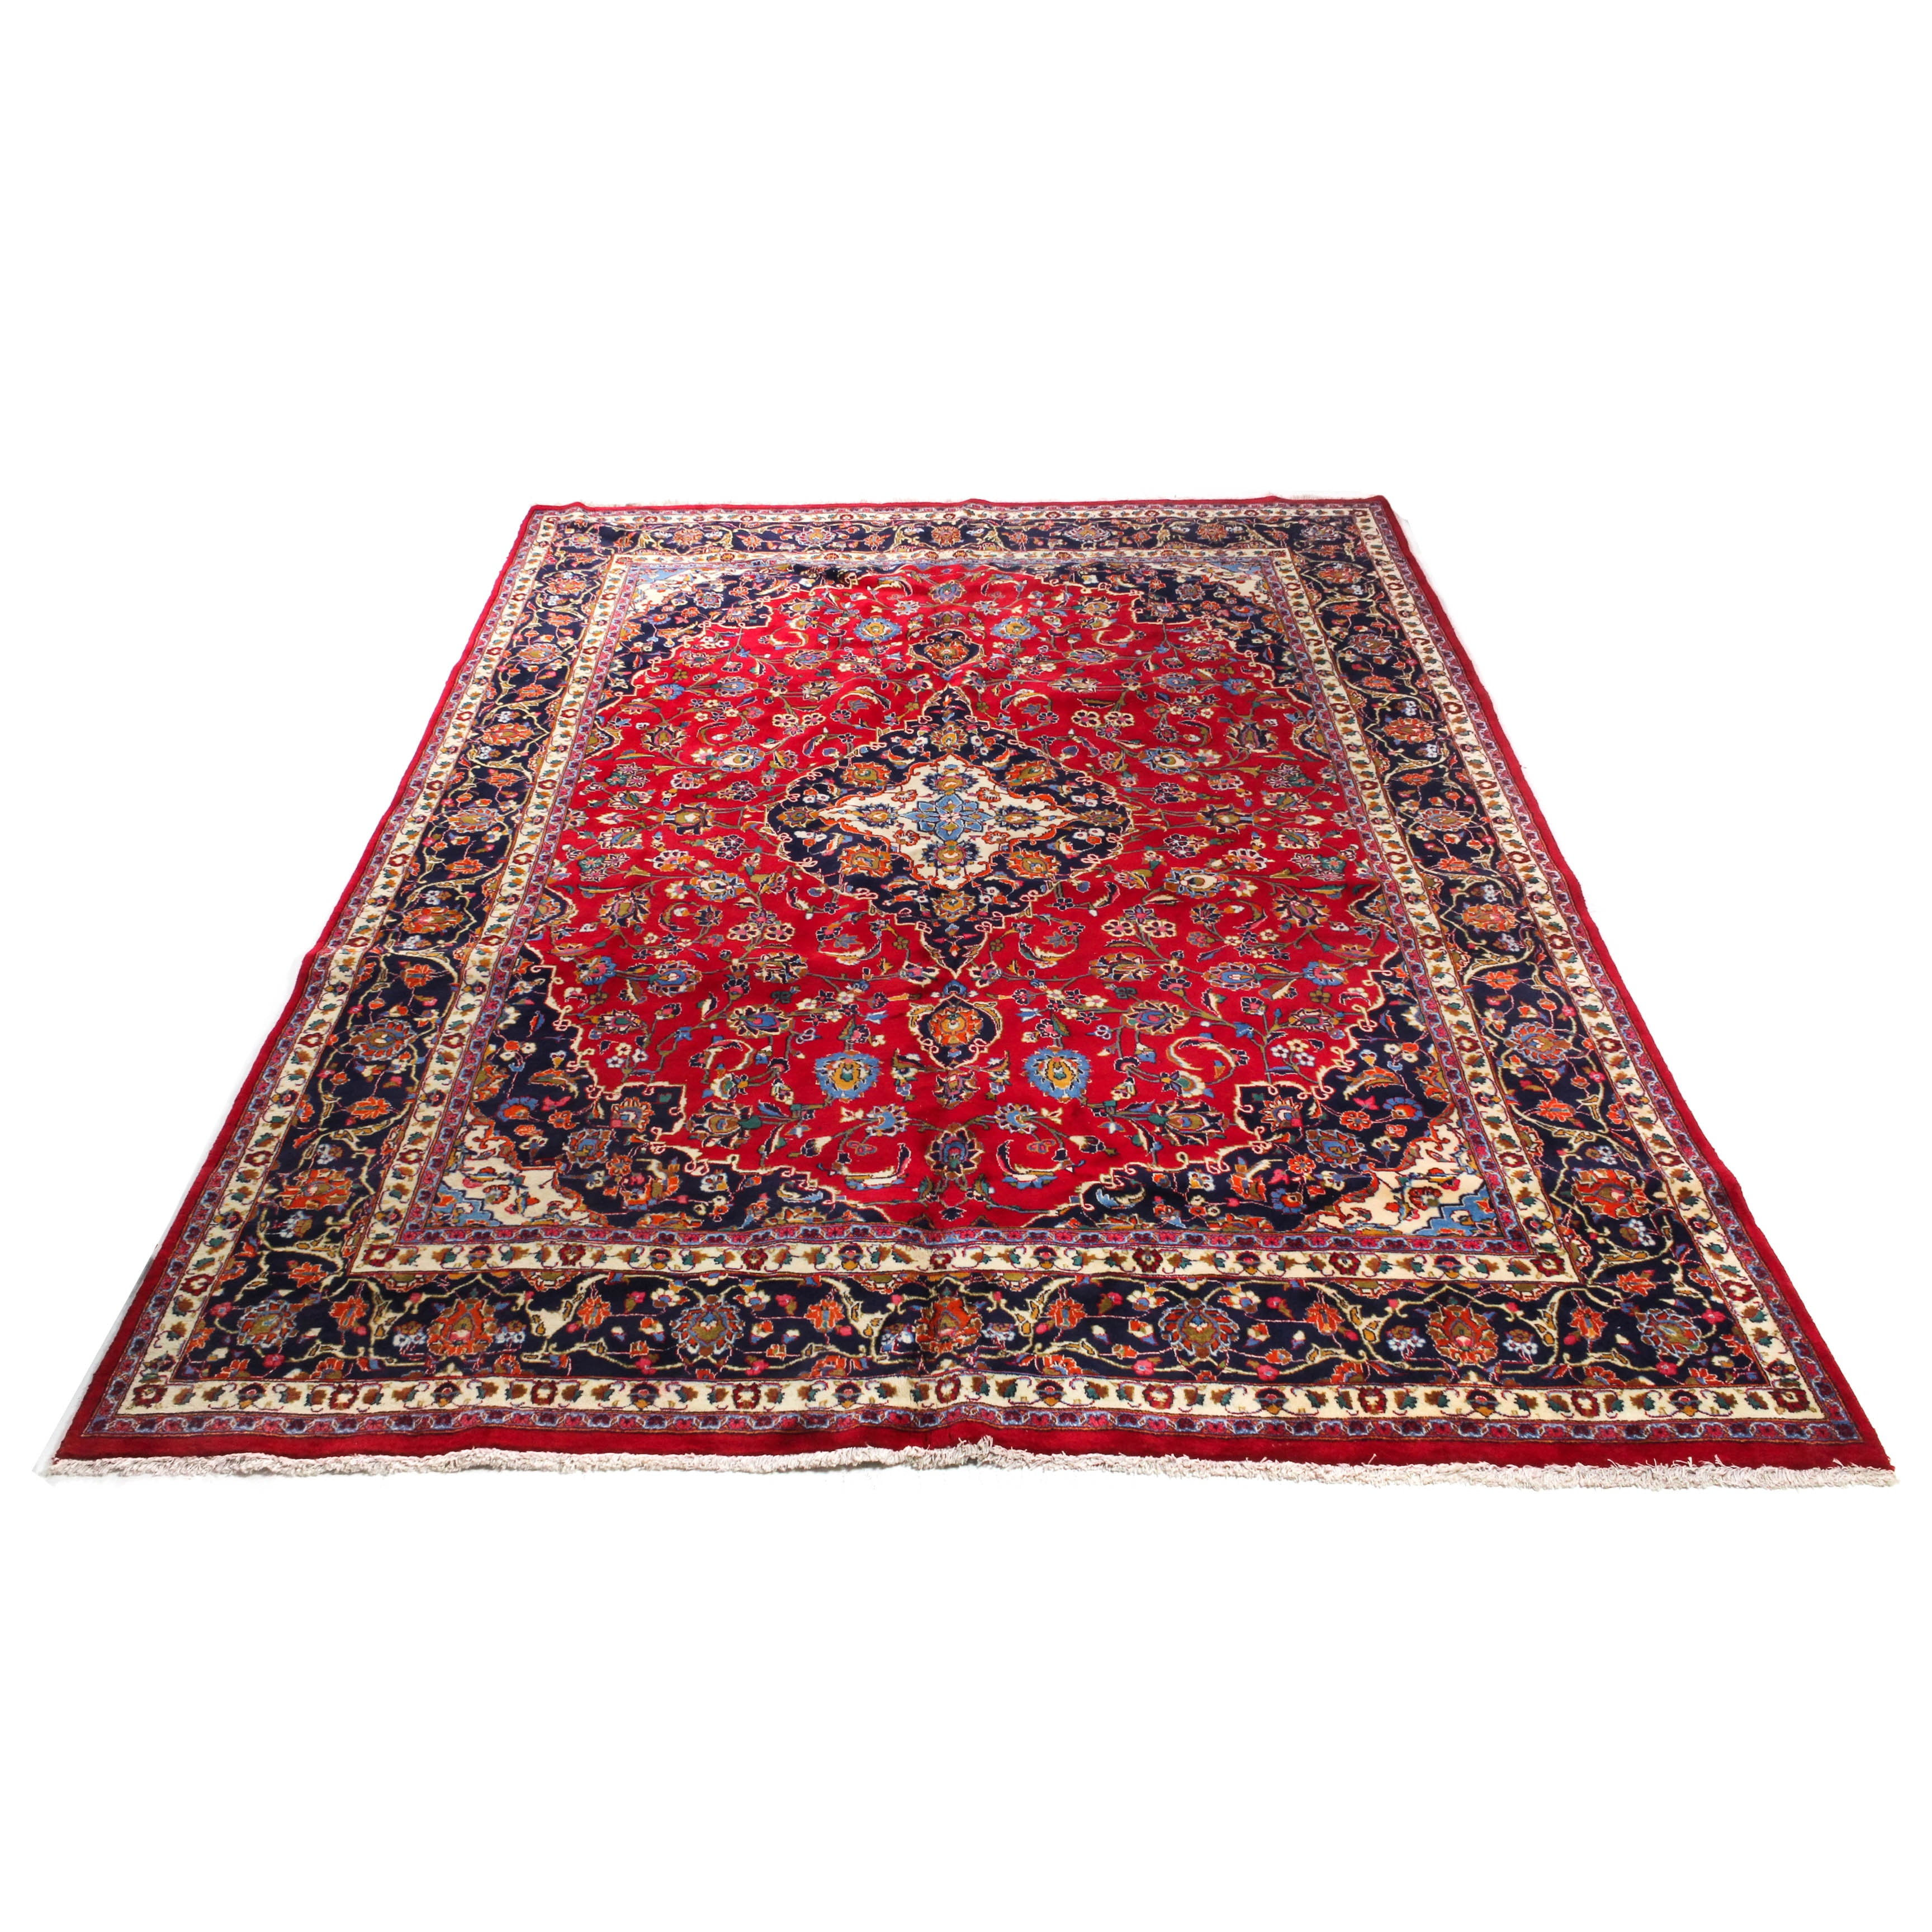 Semi-Antique Hand-Knotted Persian Mashhad Room Sized Rug